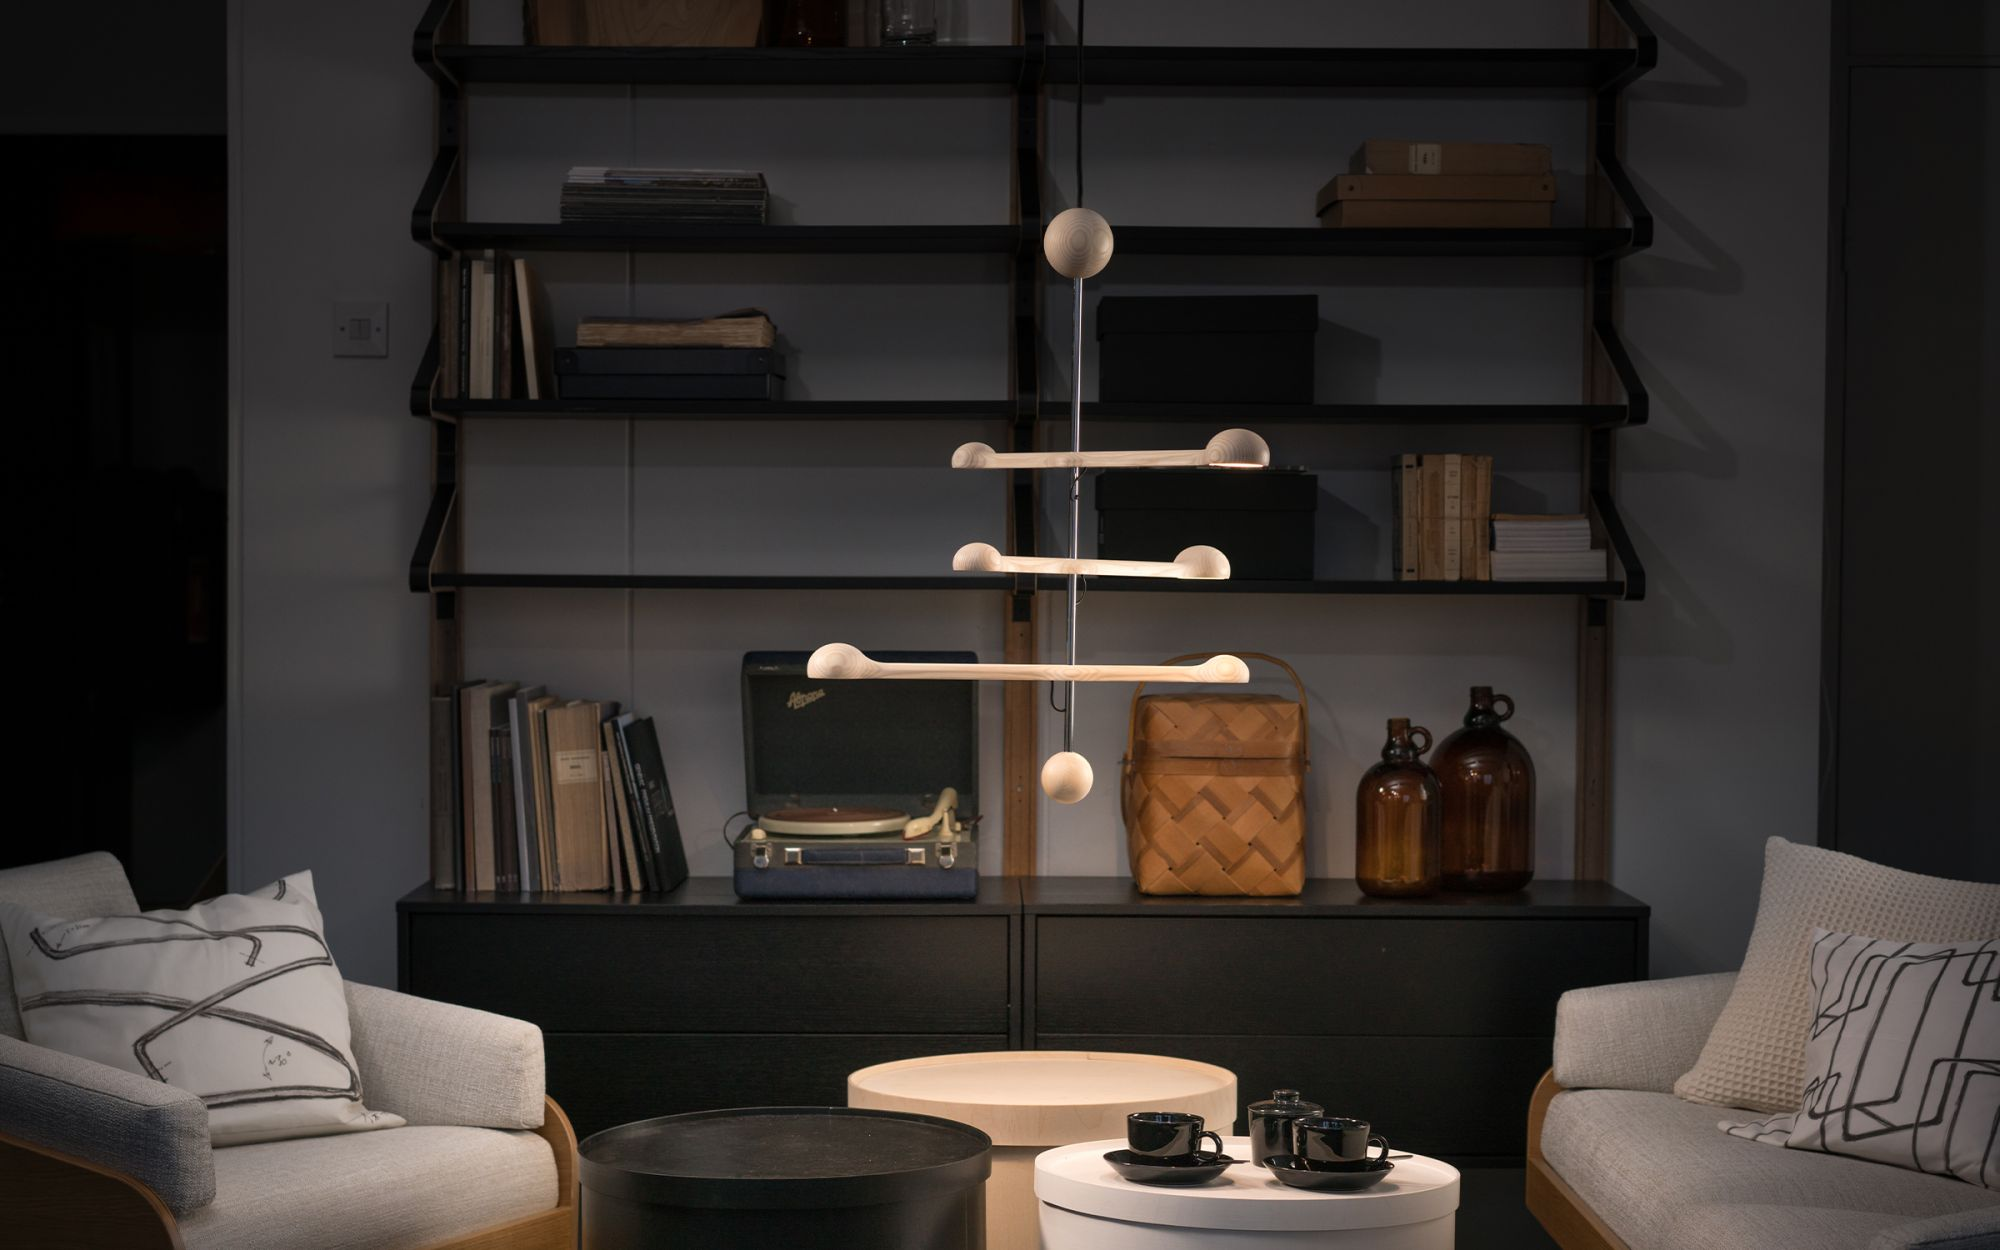 Lighting with Punnus pendant light